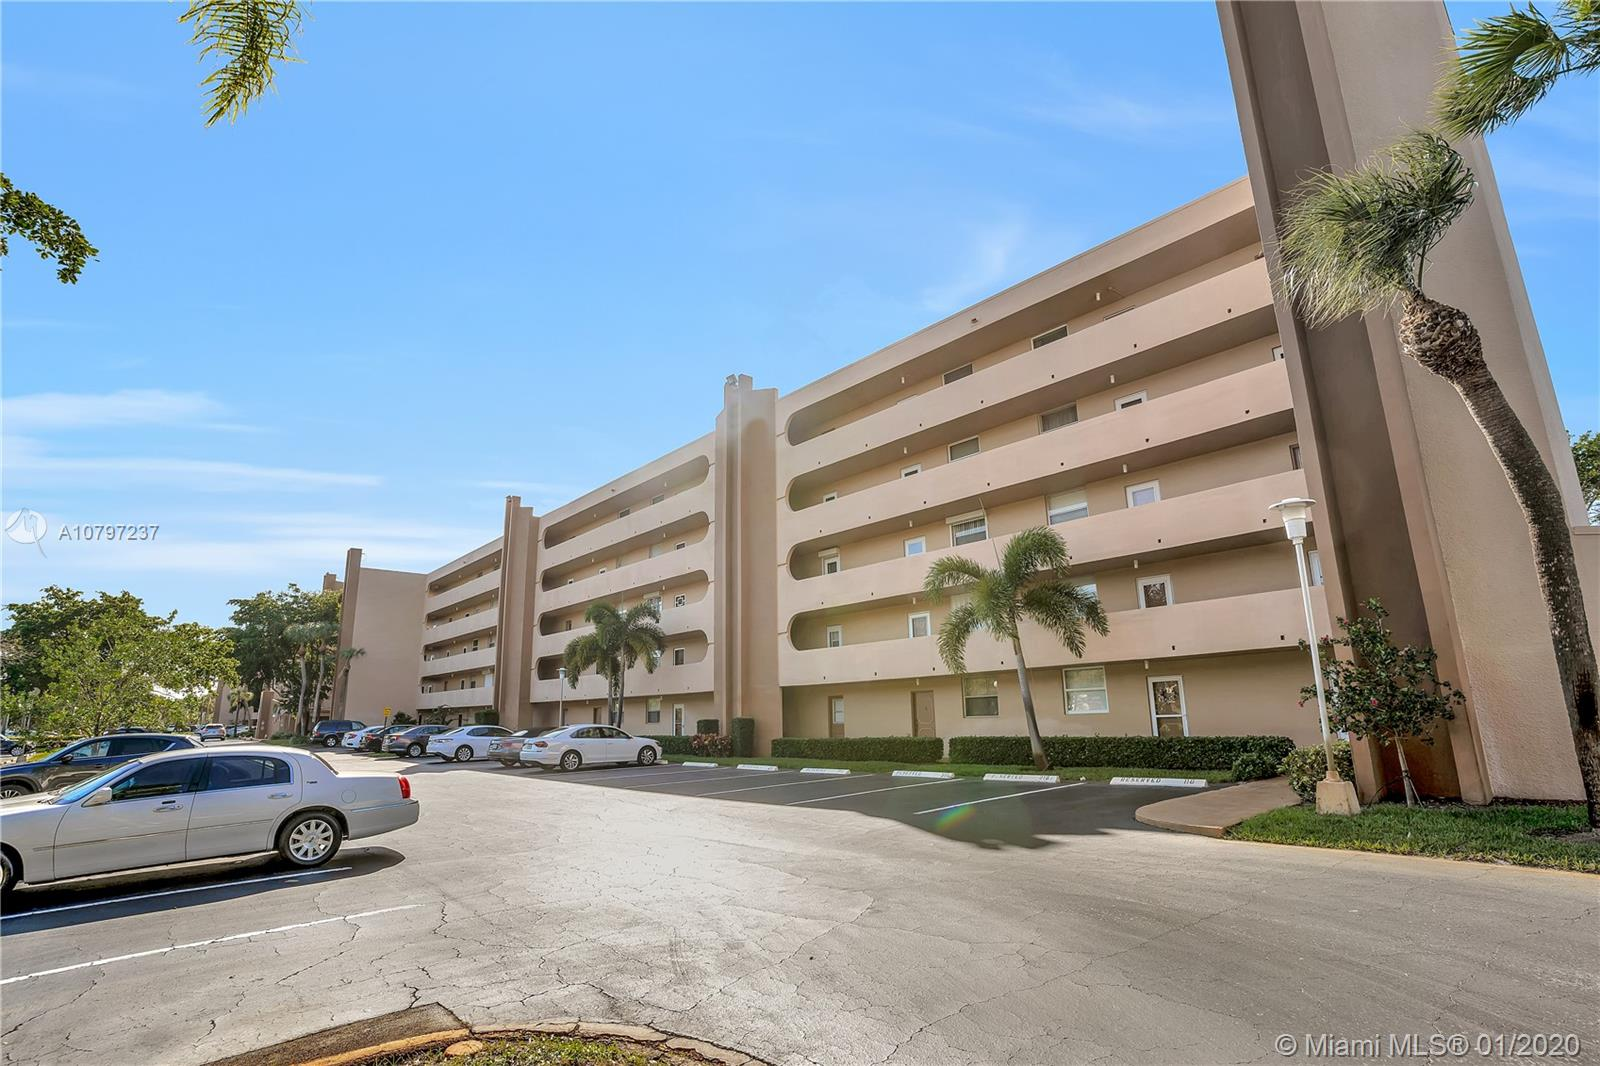 6461 NW 2nd Ave 2160, Boca Raton, FL 33487